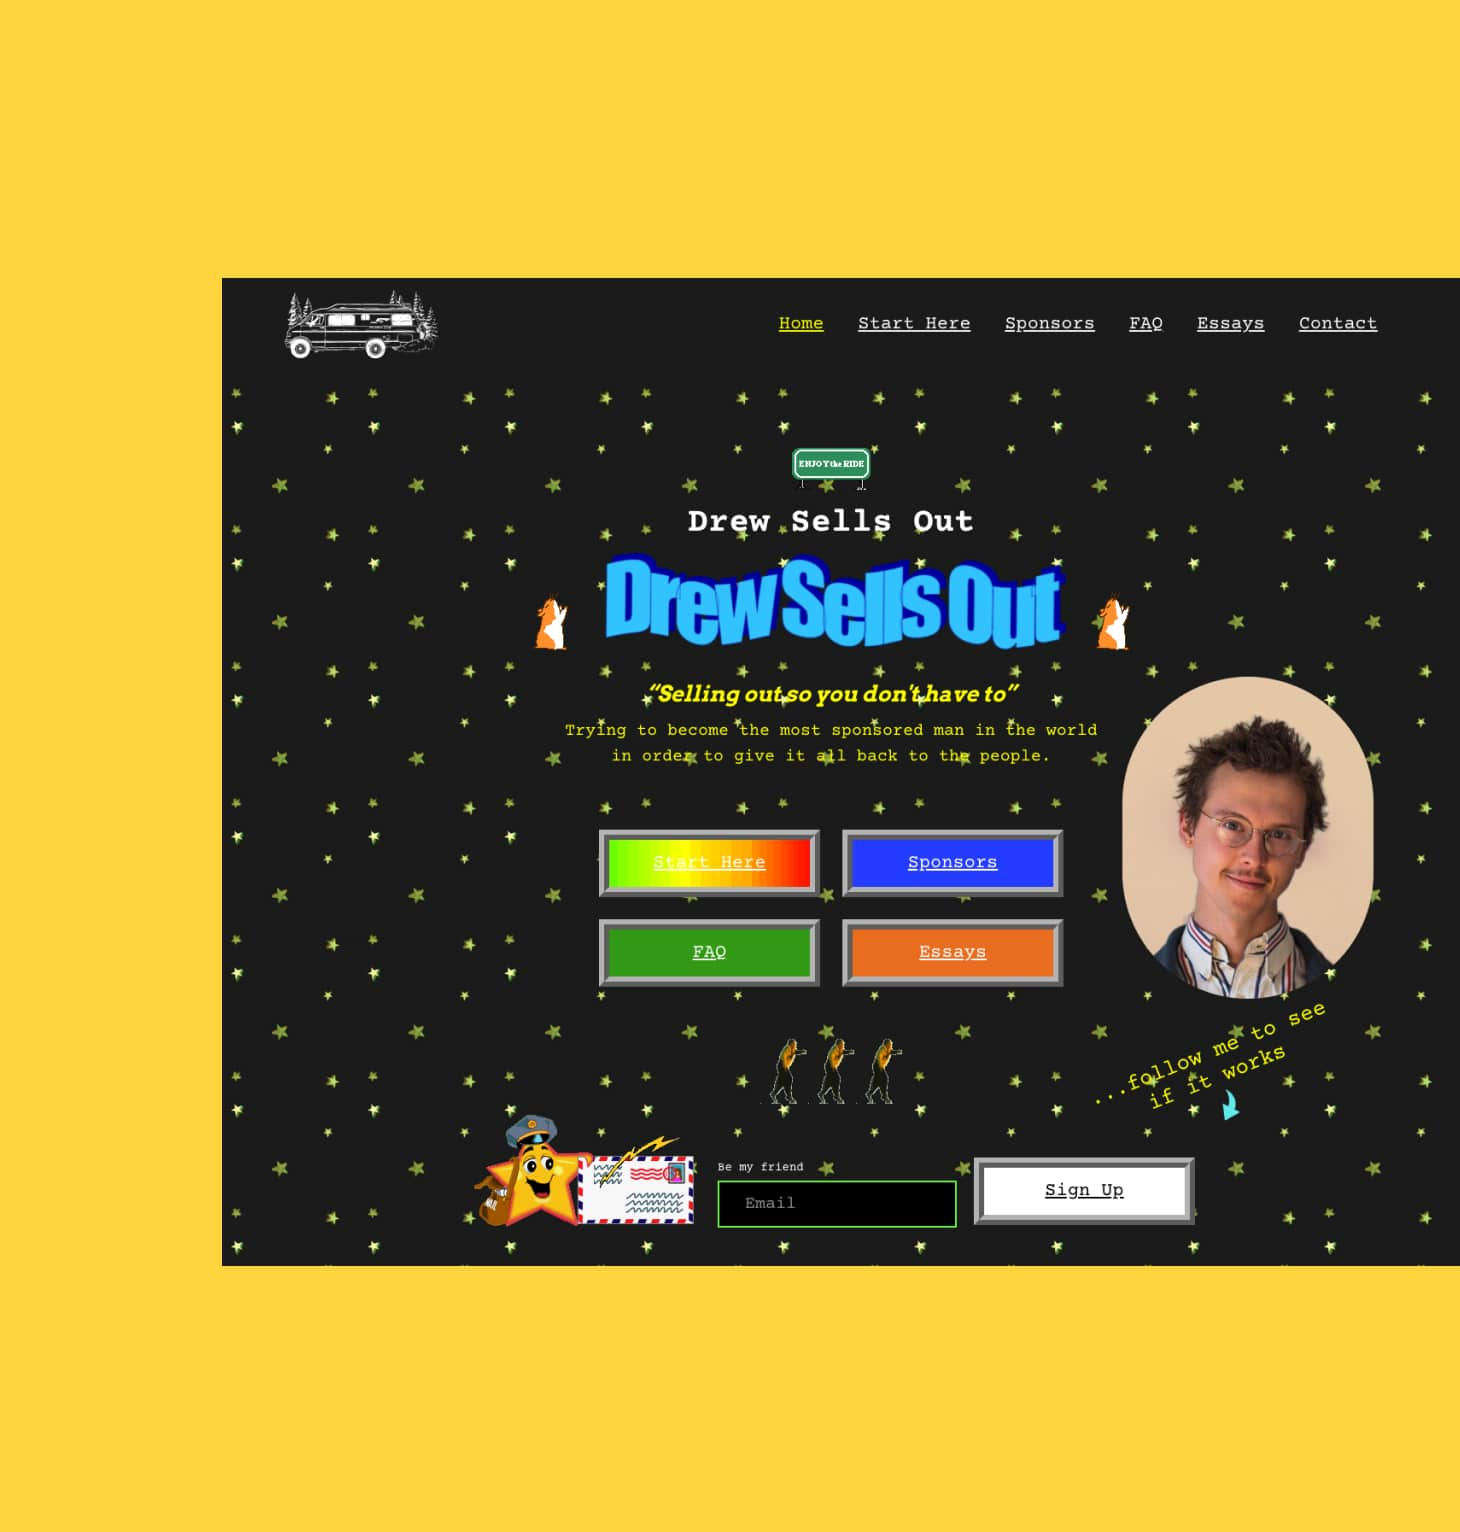 Drew Sells Out